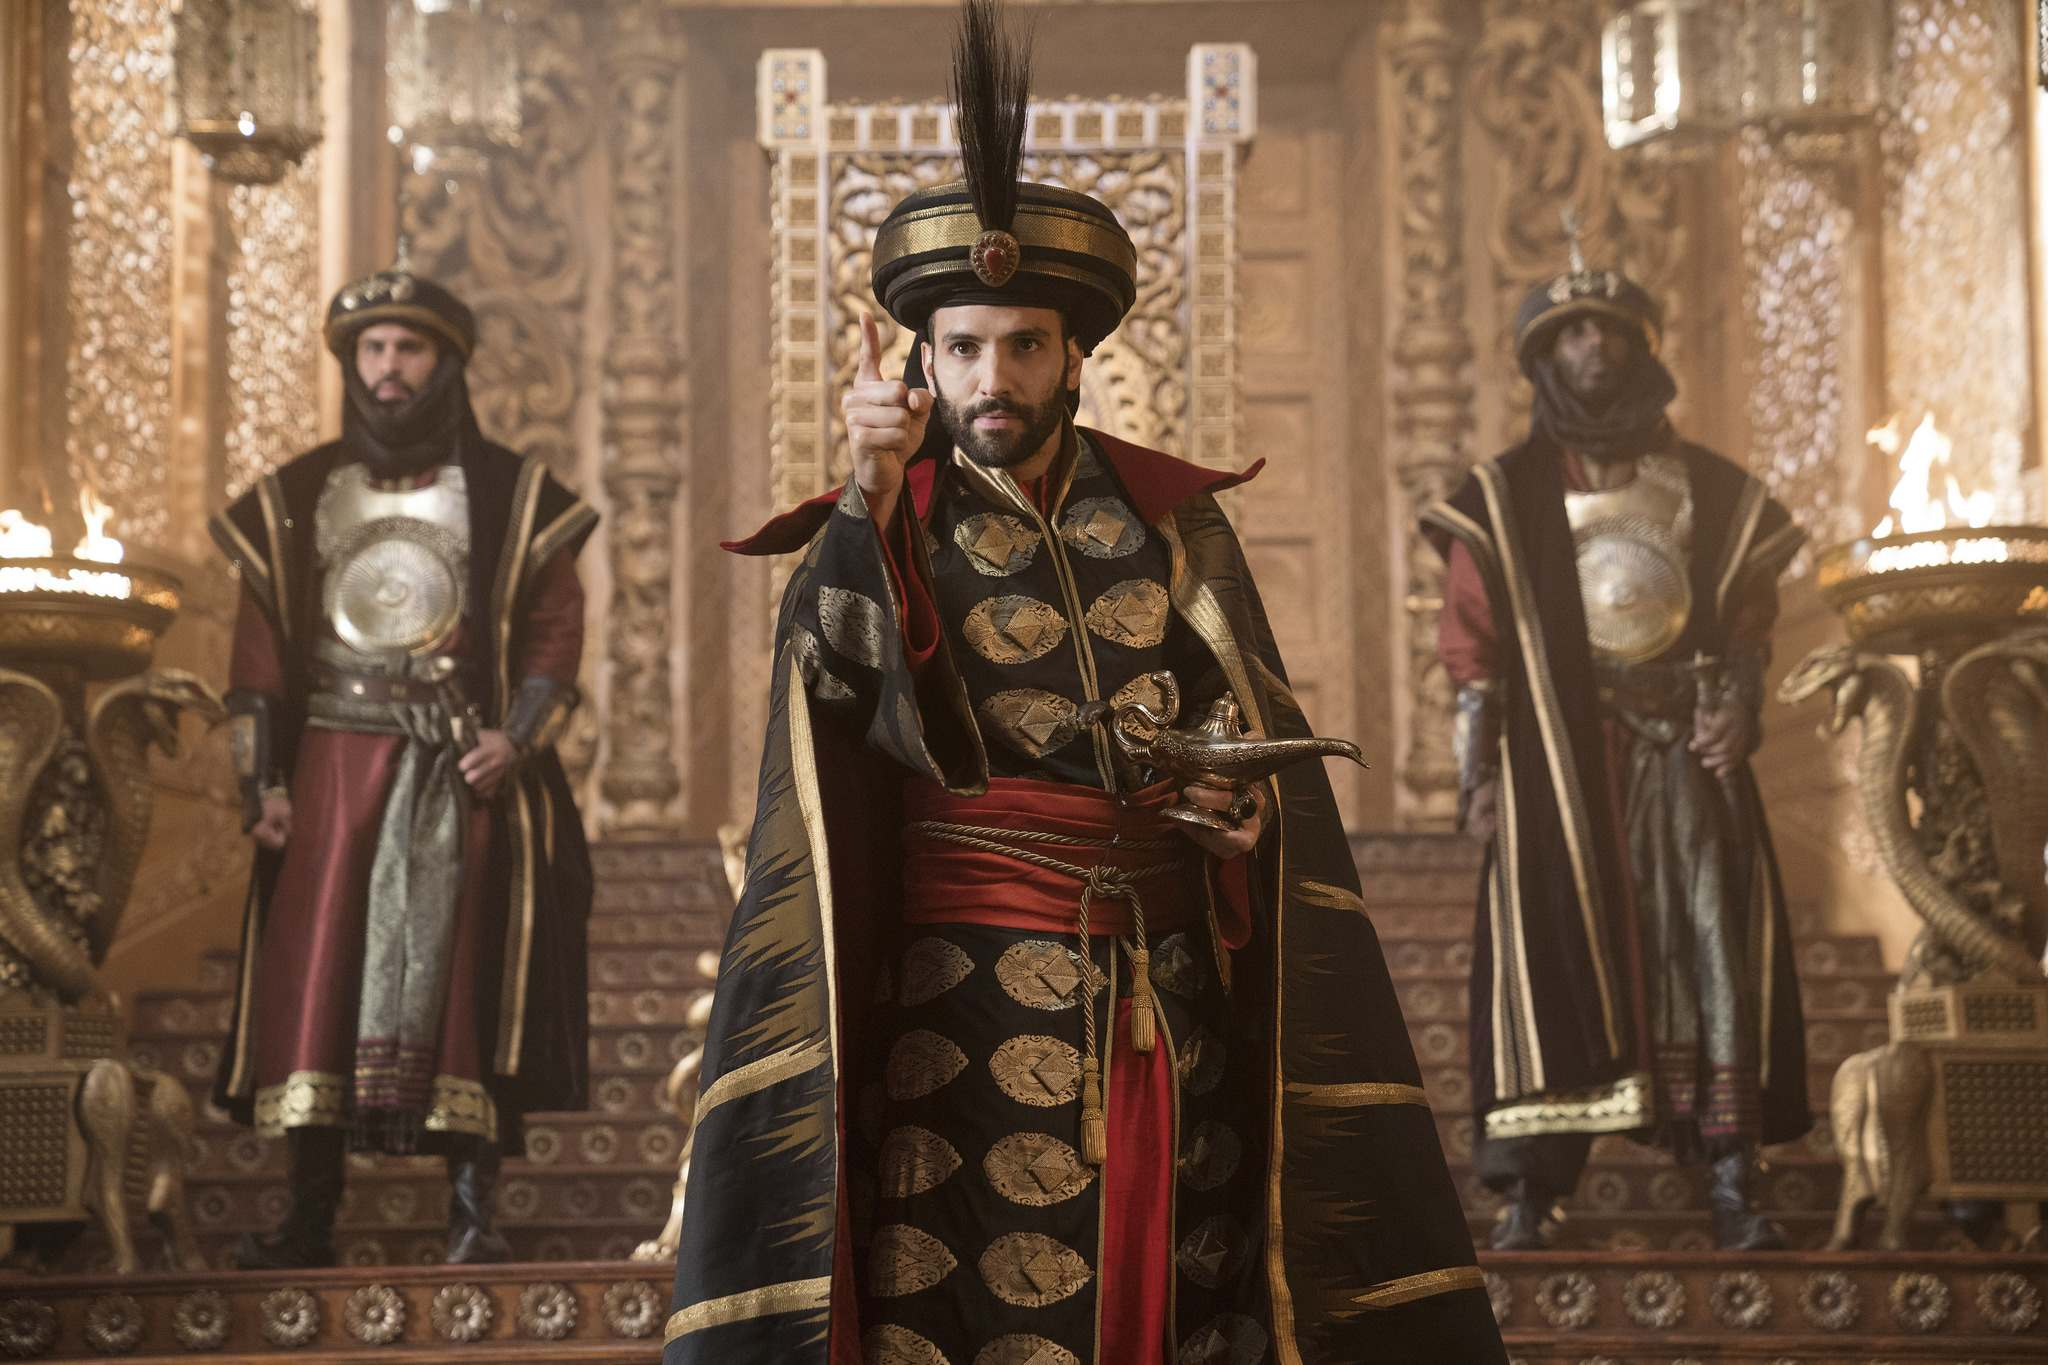 Marwan Kenzari is too young to be Jafar, but serves as a convincing villain. (Daniel Smith / Disney)